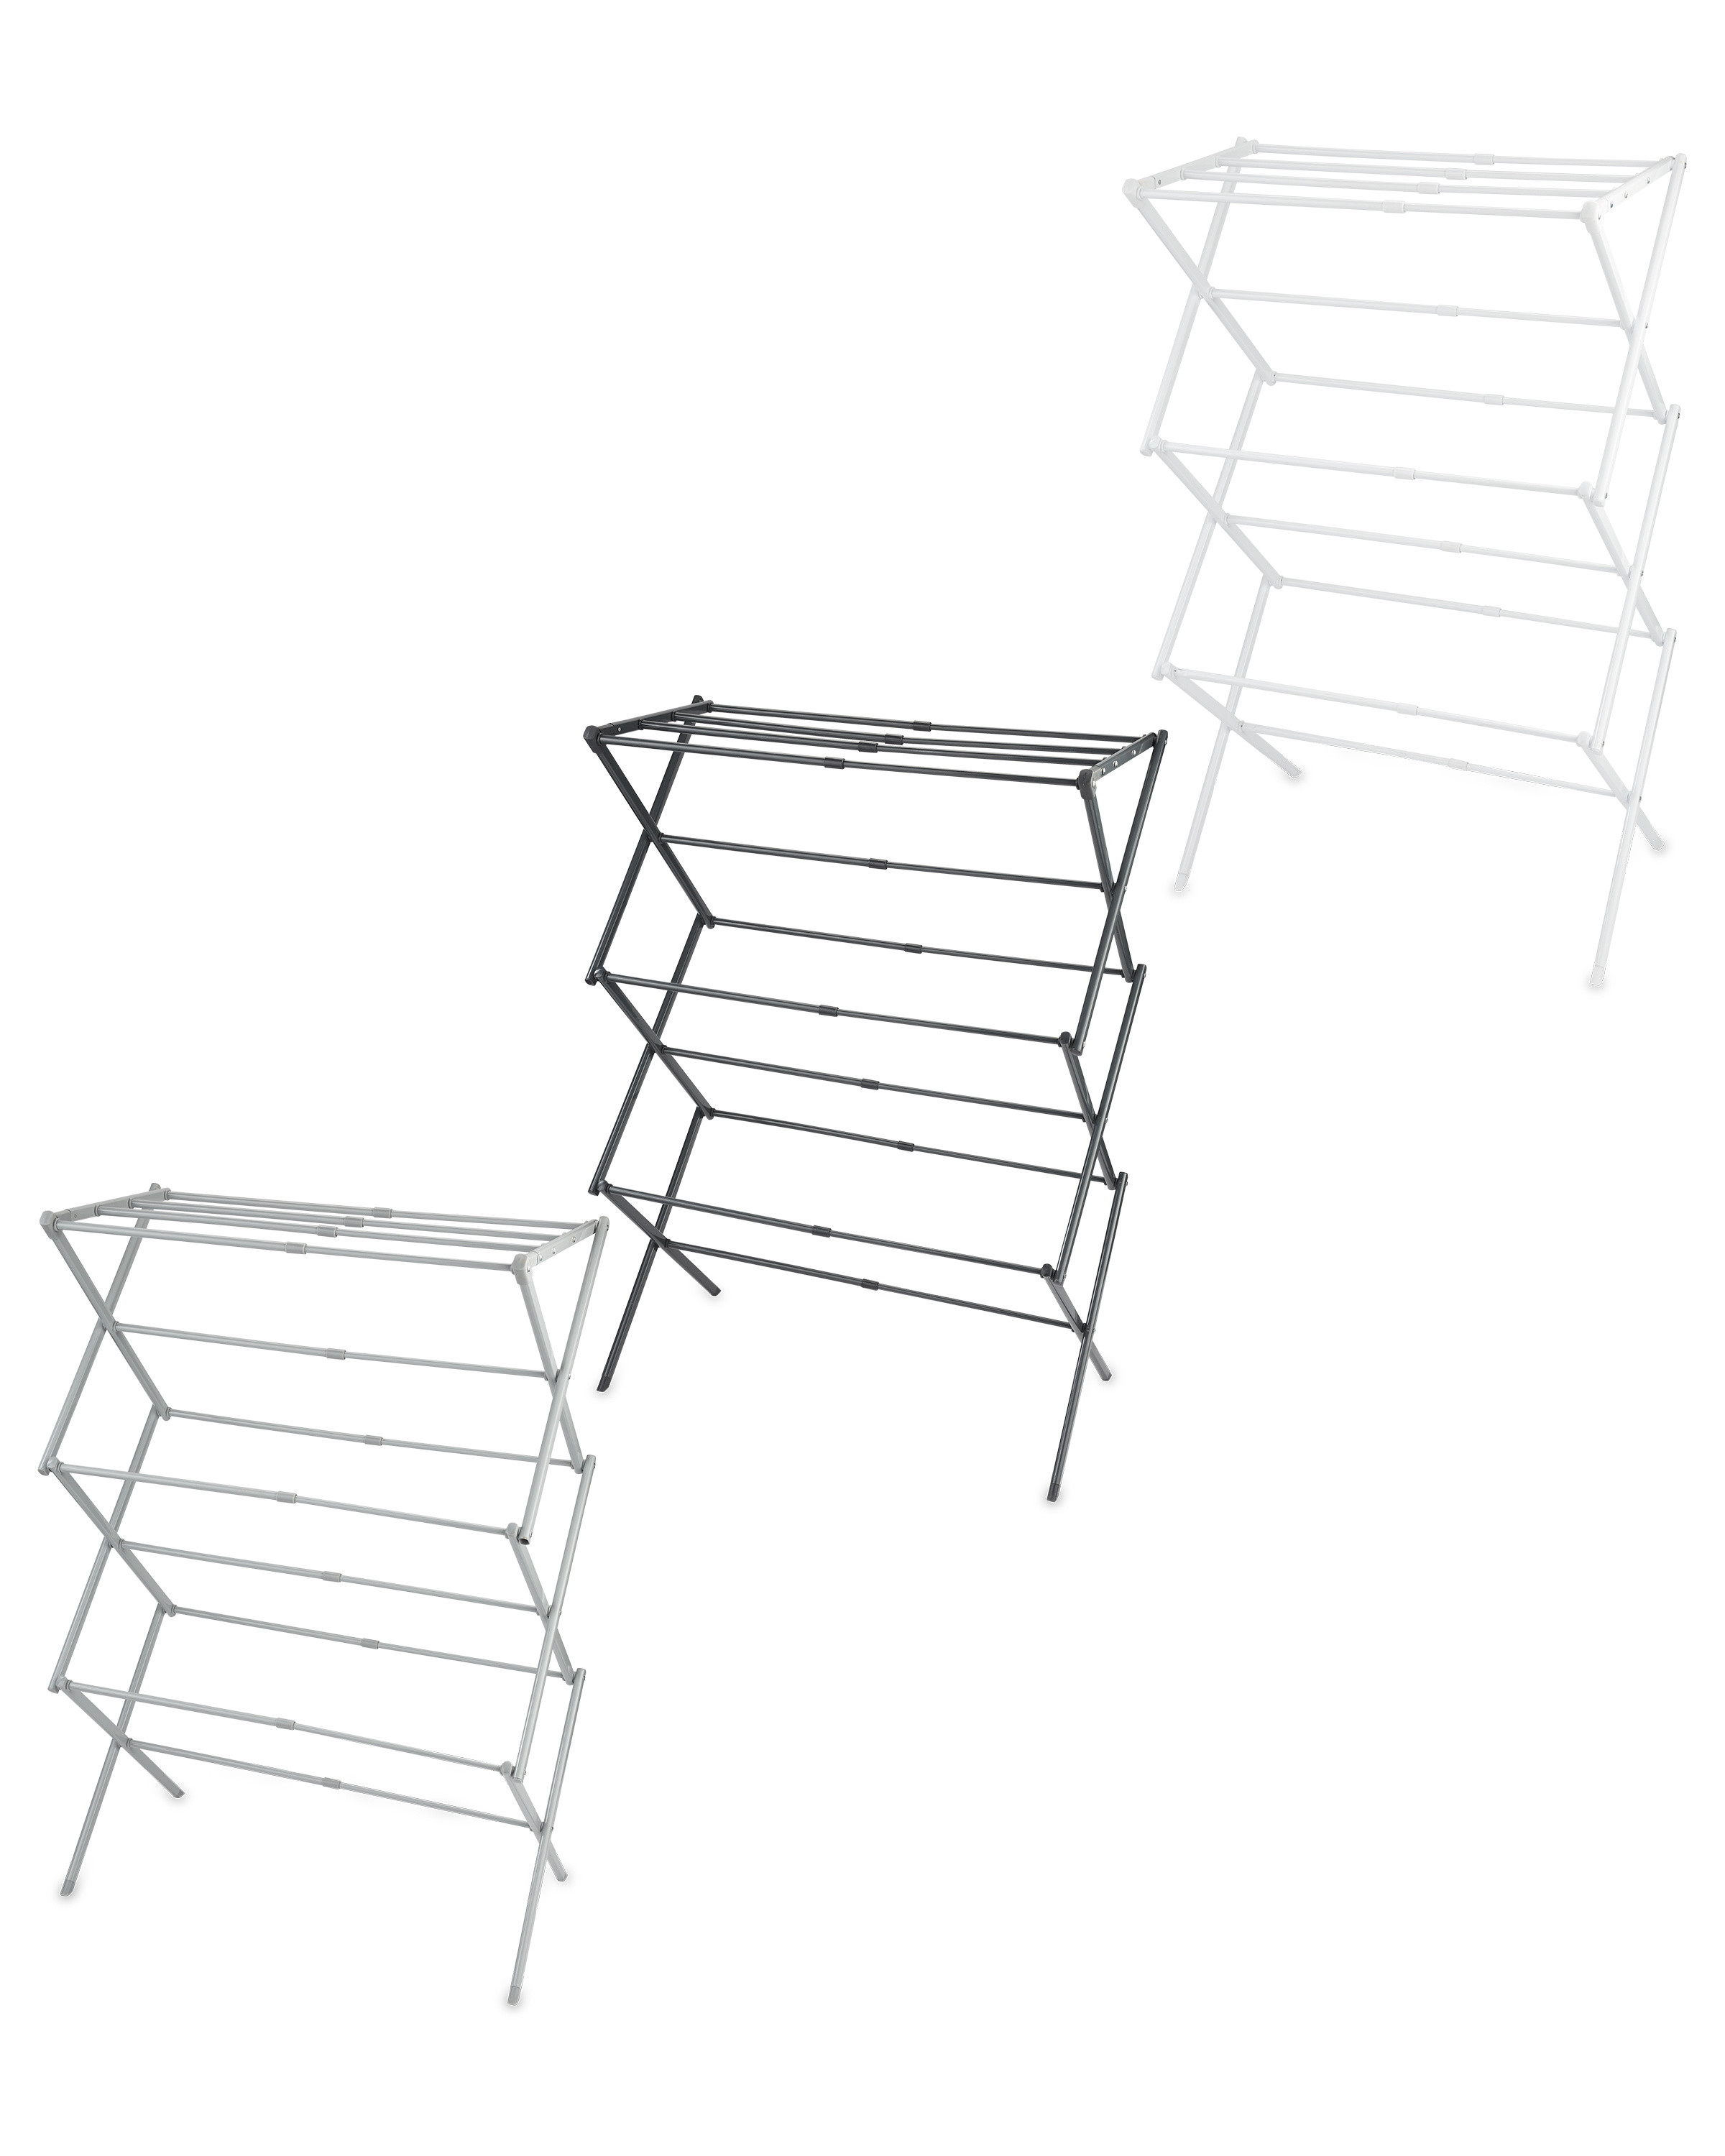 3 Tier Expanding Clothes Airer